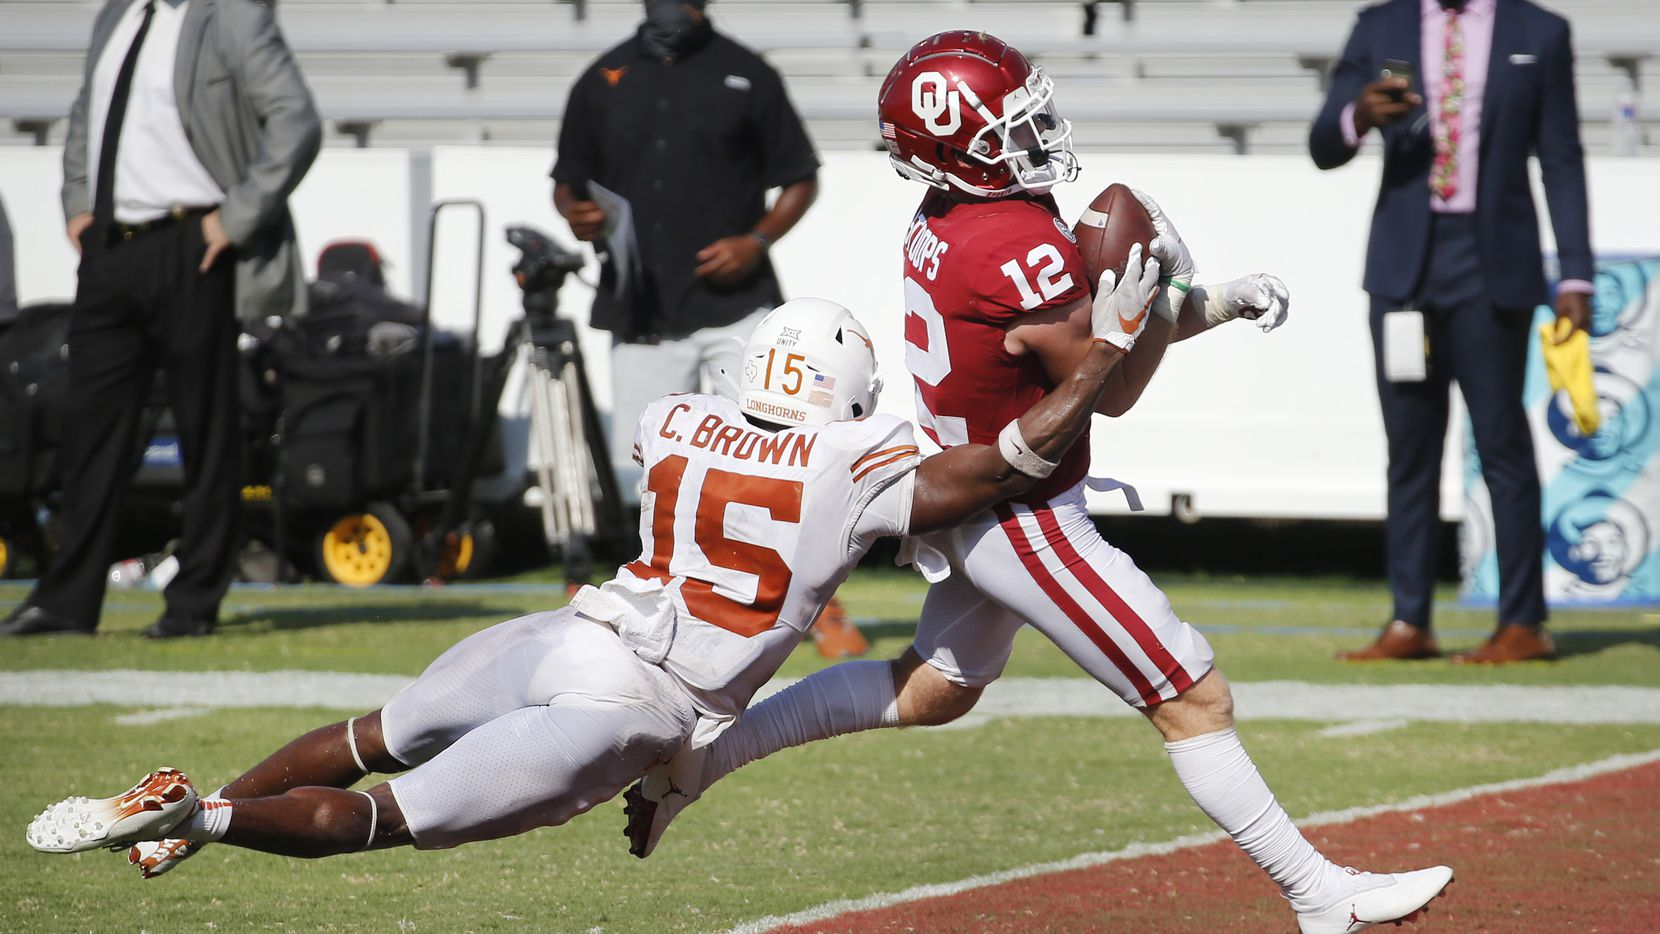 Oklahoma Sooners wide receiver Drake Stoops (12) crosses the goal line for the winning touchdown as Texas Longhorns defensive back Chris Brown (15) attempts the tackle in quadruple overtime at the Cotton Bowl in Dallas, Saturday, October 10, 2020. Oklahoma won the Red River Rivalry, 53-45.